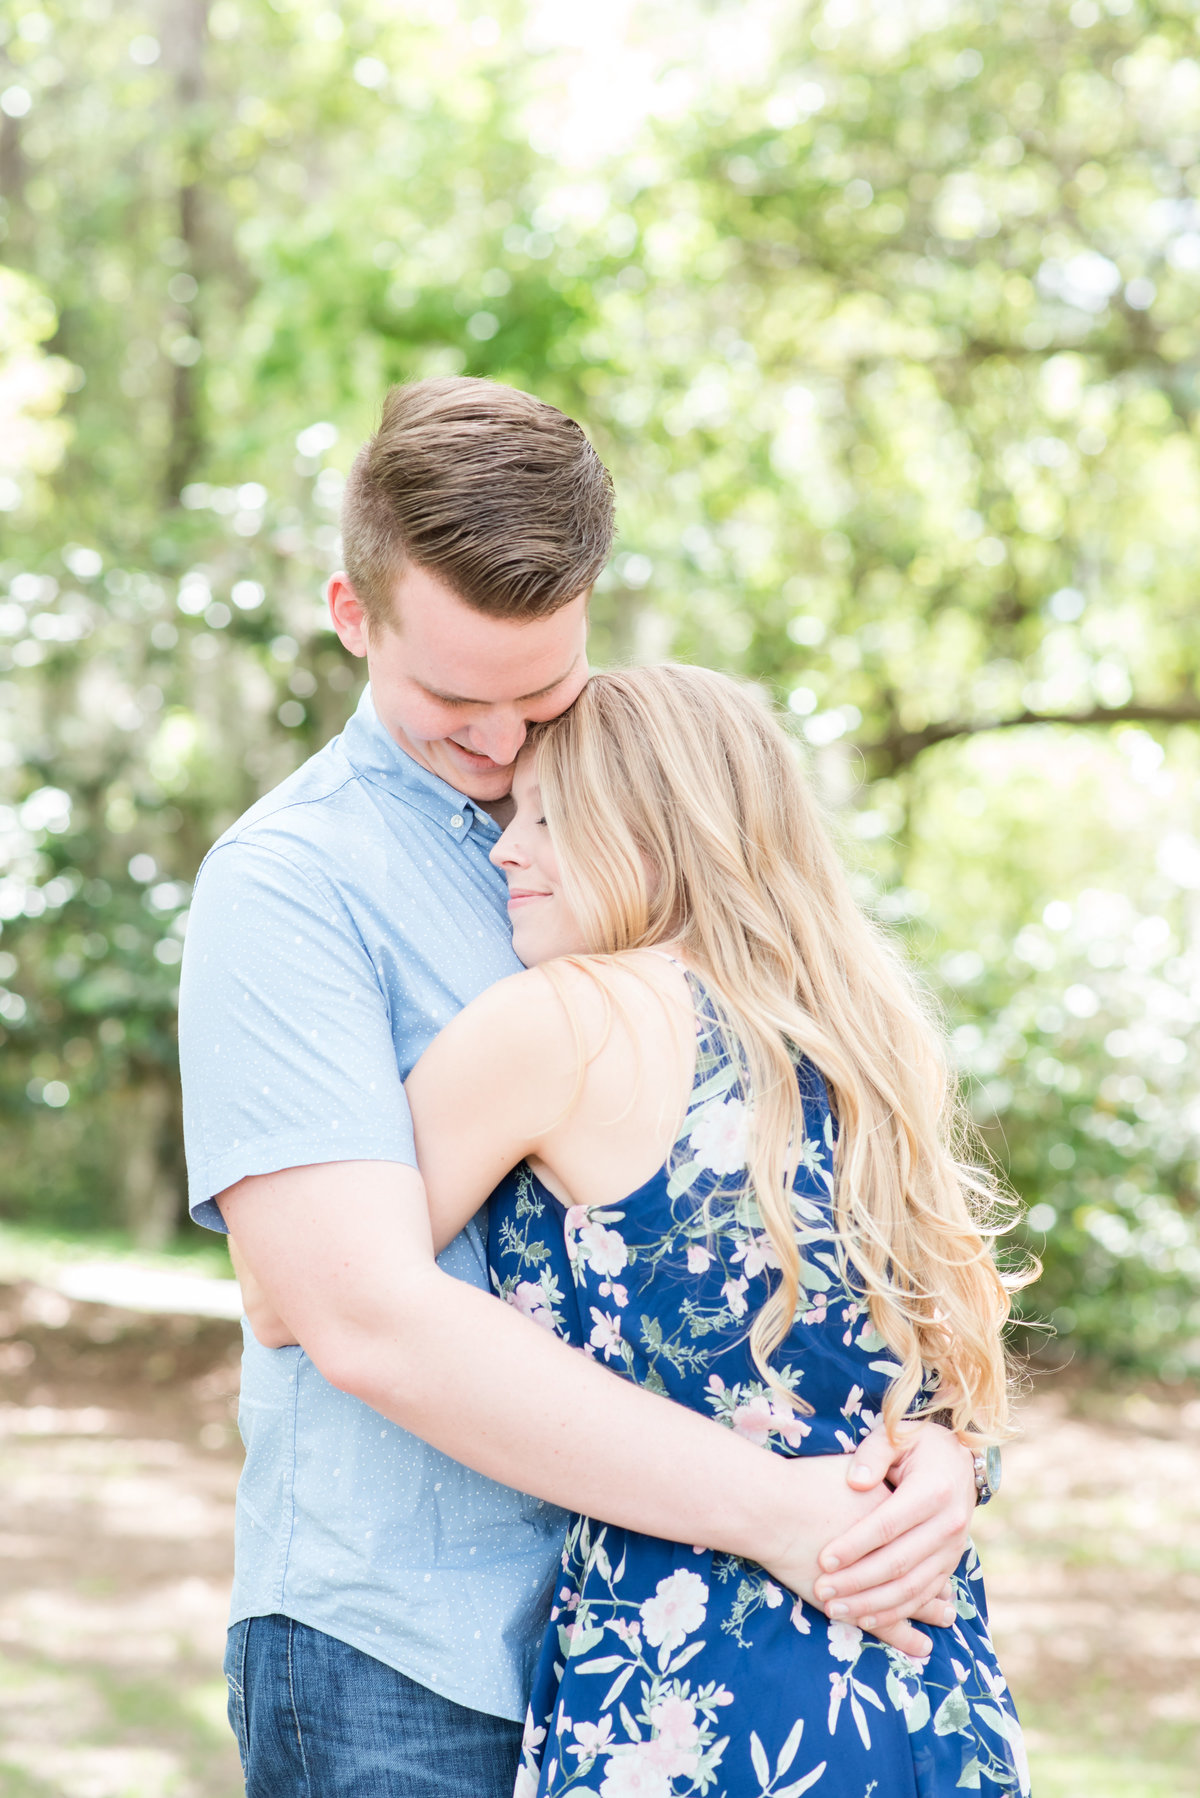 PORTFOLIO-2018-04-14 Tara and Morgan Engagement Session 245634-9